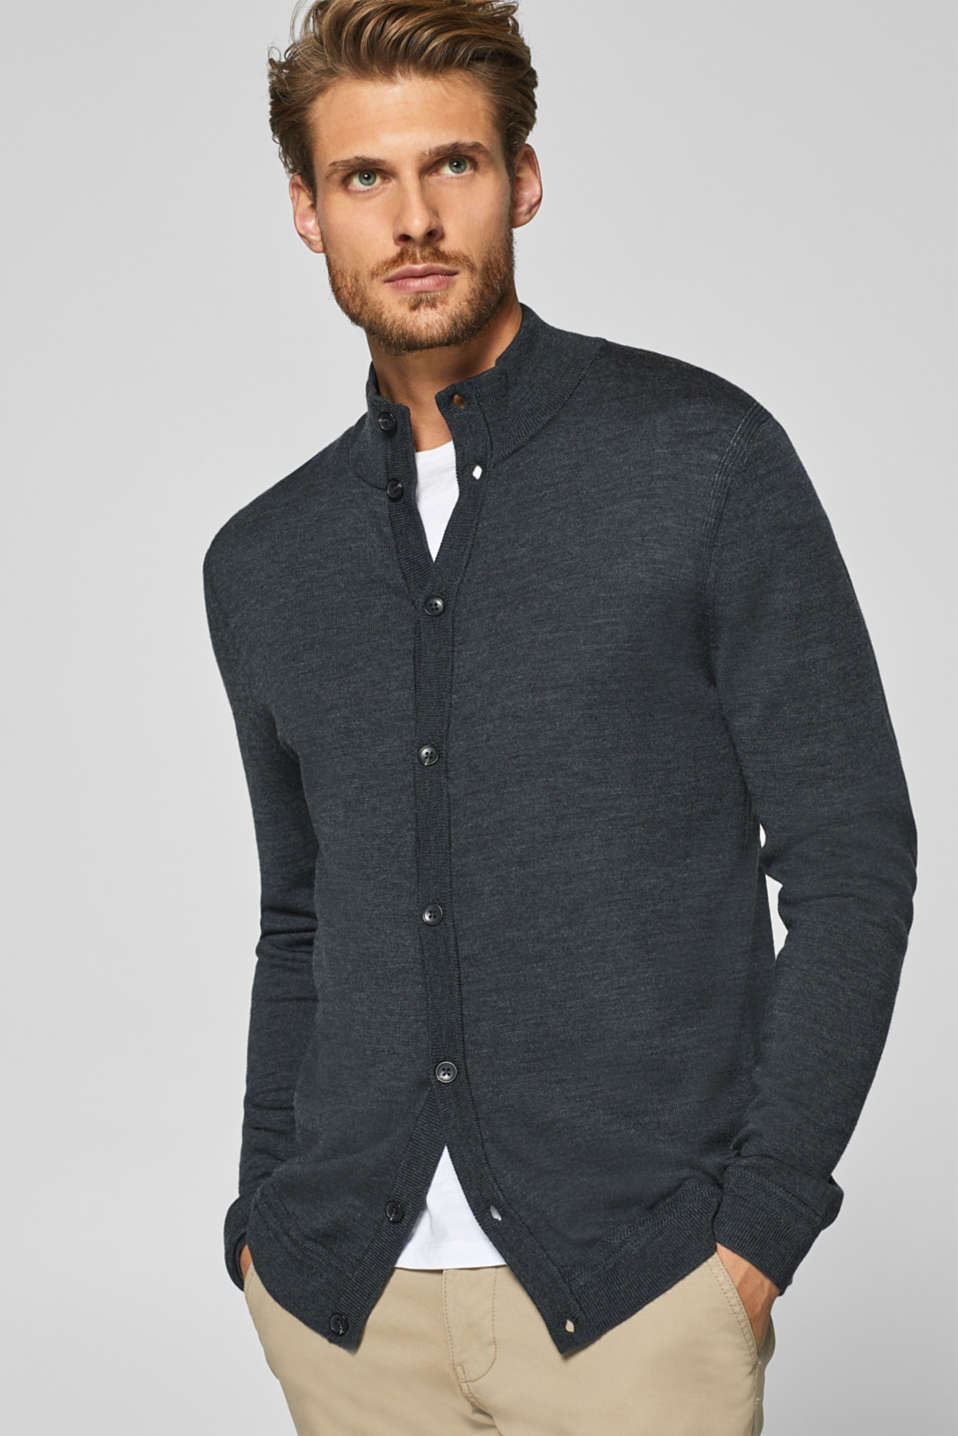 Esprit - 100% wool: cardigan with a stand-up collar